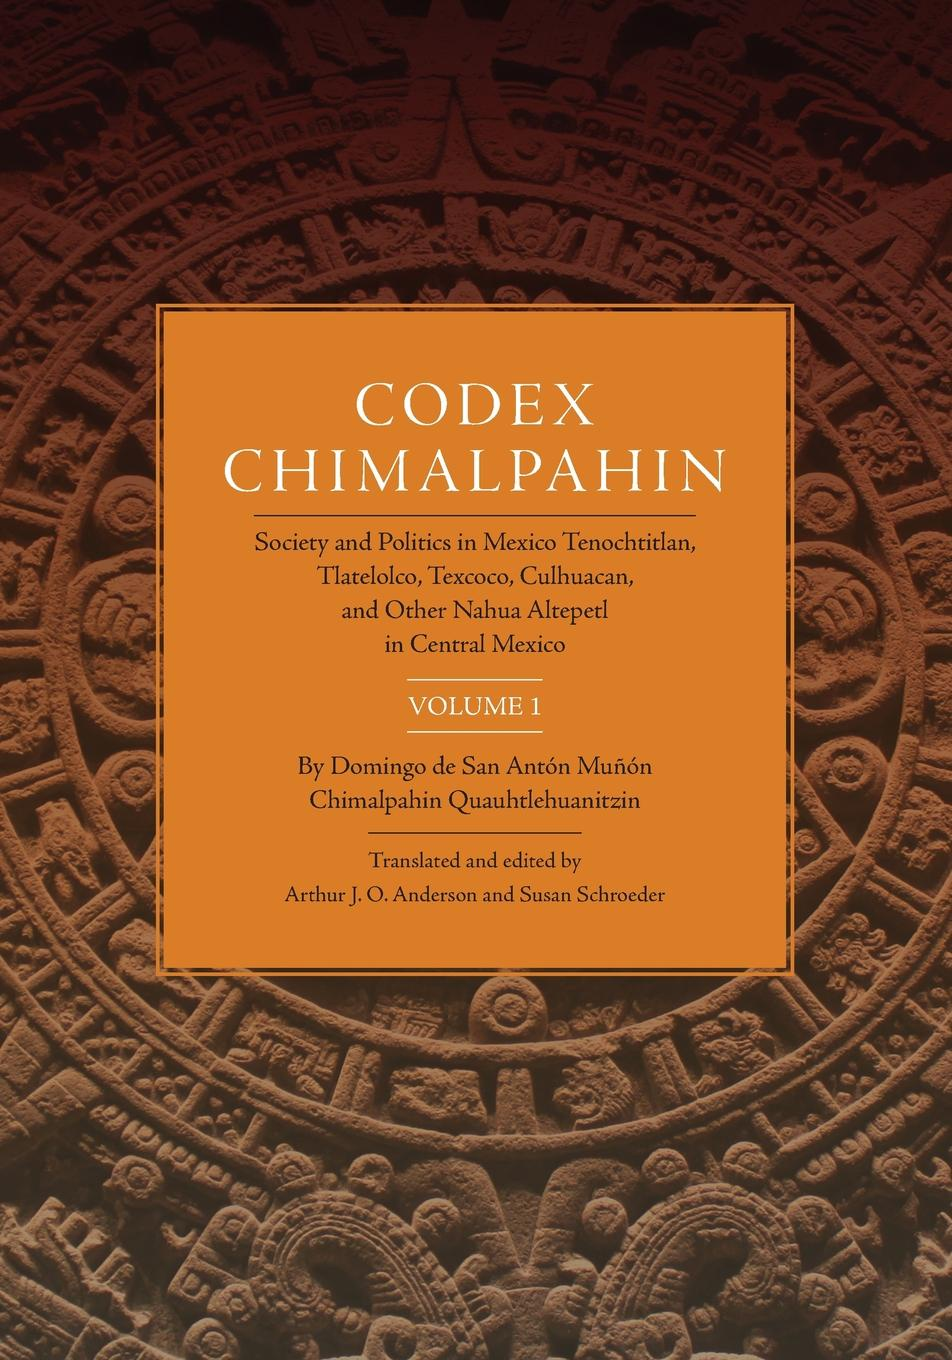 don Domingo Chimalpahin Codex Chimalpahin, Vol. I. Society and Politics in Mexico Tenochtitlan, Tlateloco, Texcoco, Culhuacan, and Other Nahua Altepetl in Central Mexico miraculous images and votive offerings in mexico